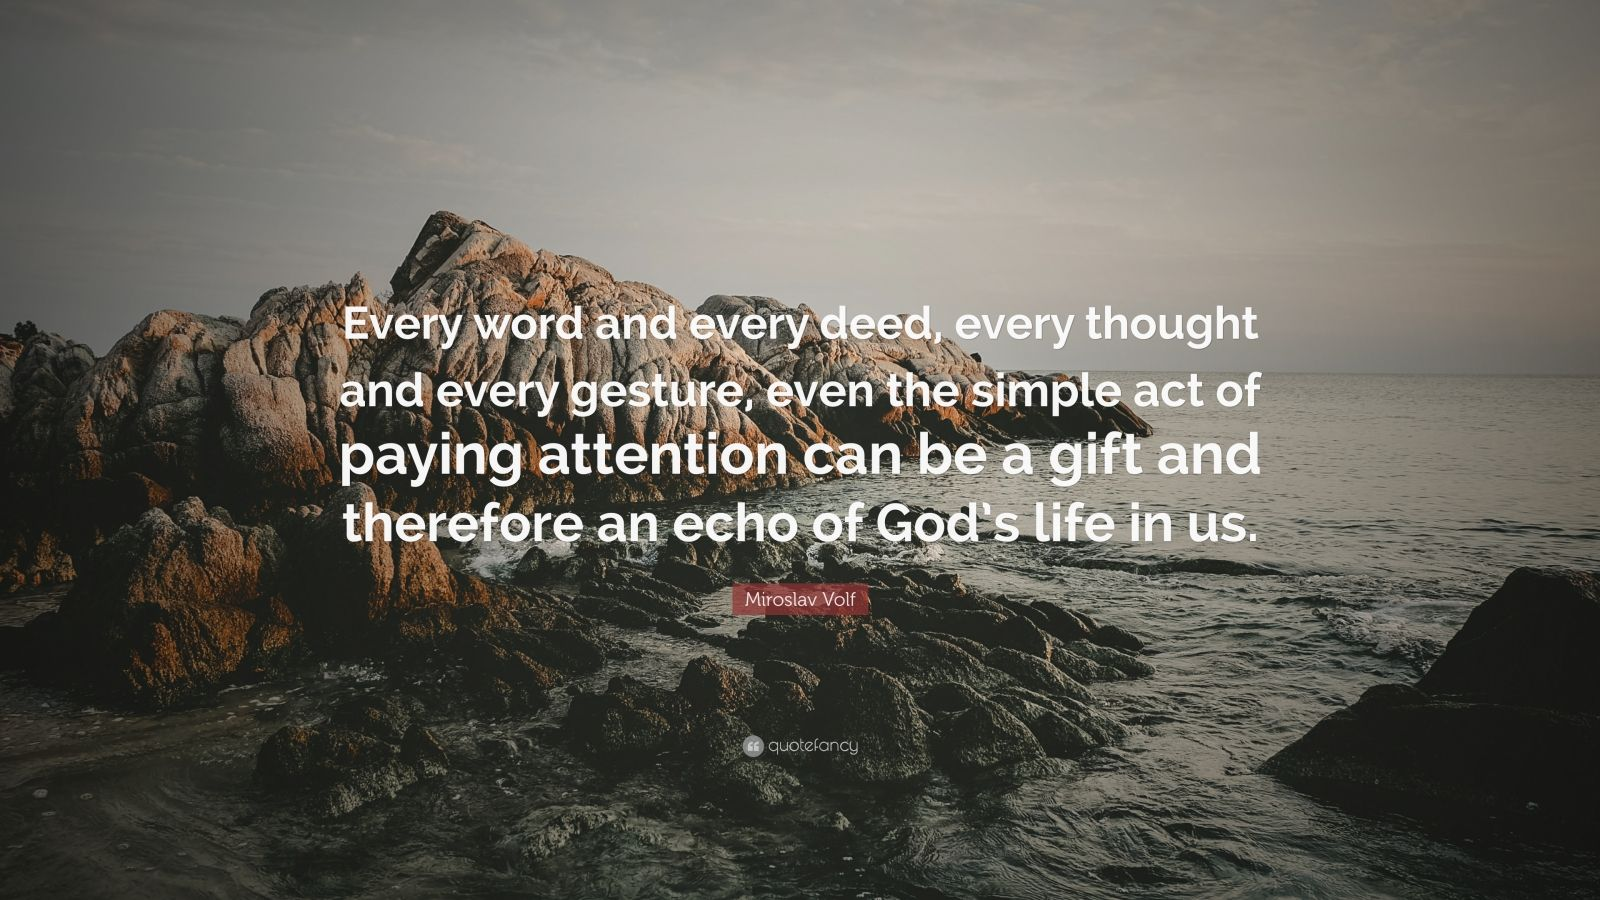 """Miroslav Volf Quote: """"Every word and every deed, every thought and every gesture, even the simple act of paying attention can be a gift and therefore an echo of God's life in us."""""""